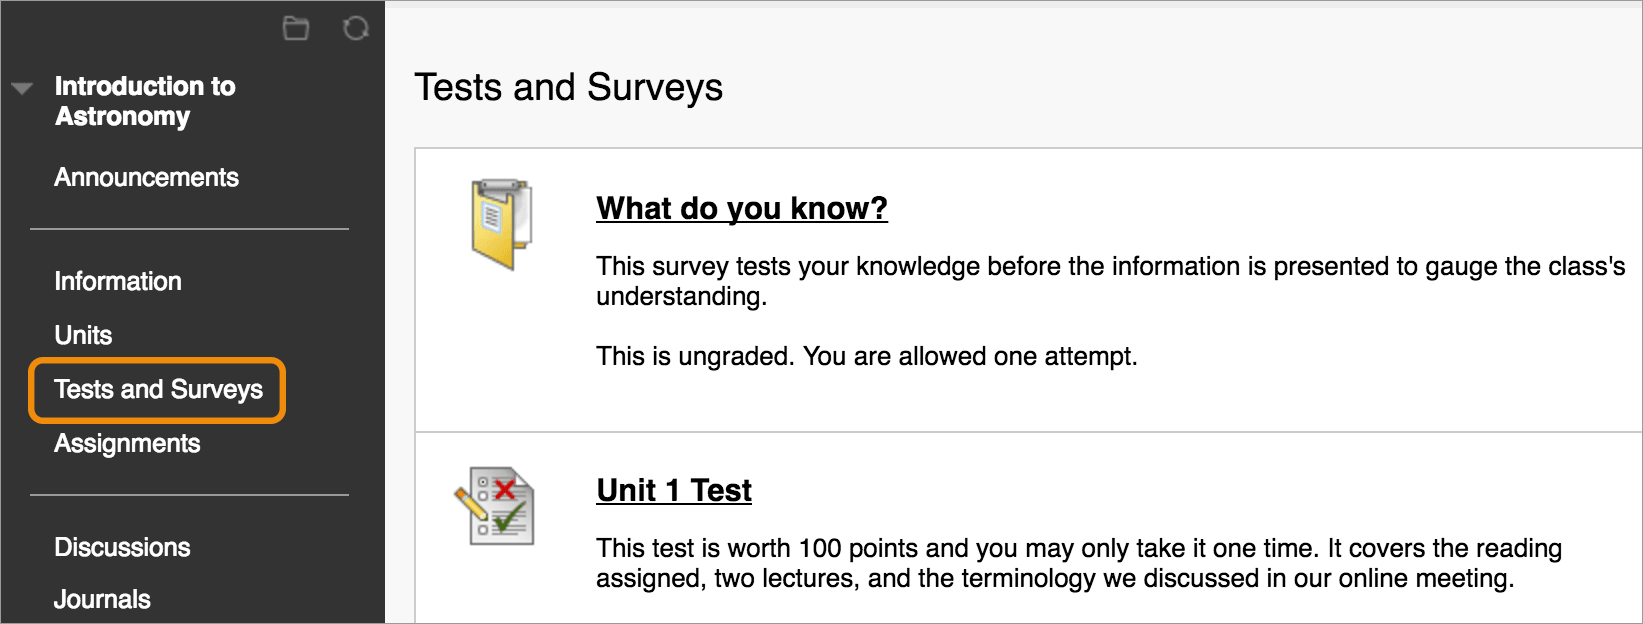 Tests and Surveys | Blackboard Help